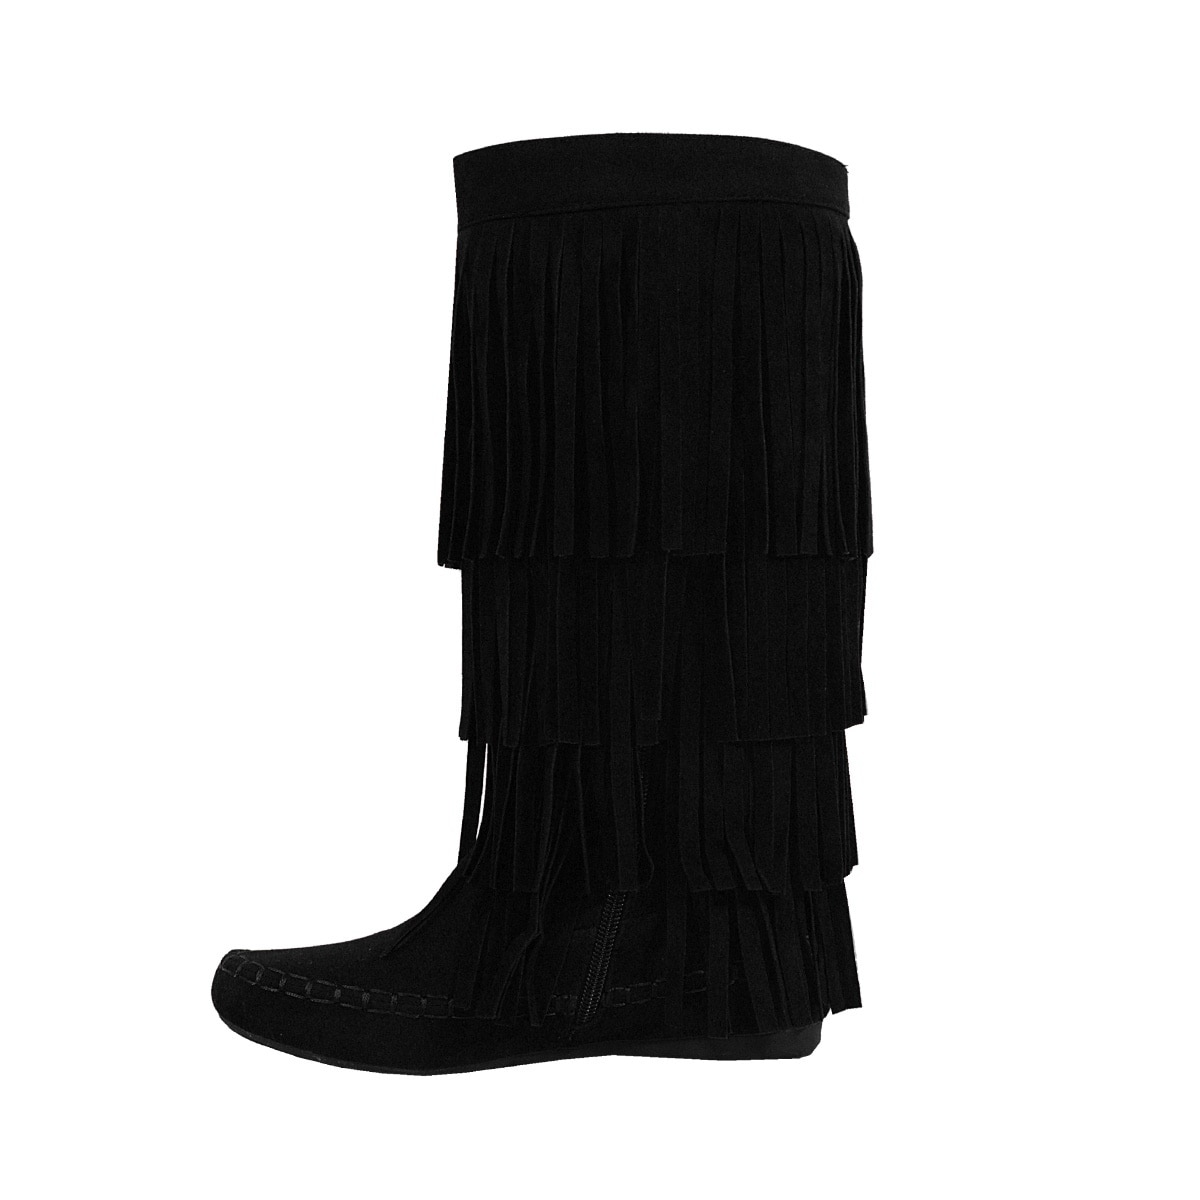 8c246d00cd26 Shop Yoki-Mudd-55 Women s Fringe Boots - Free Shipping Today - Overstock -  21950116